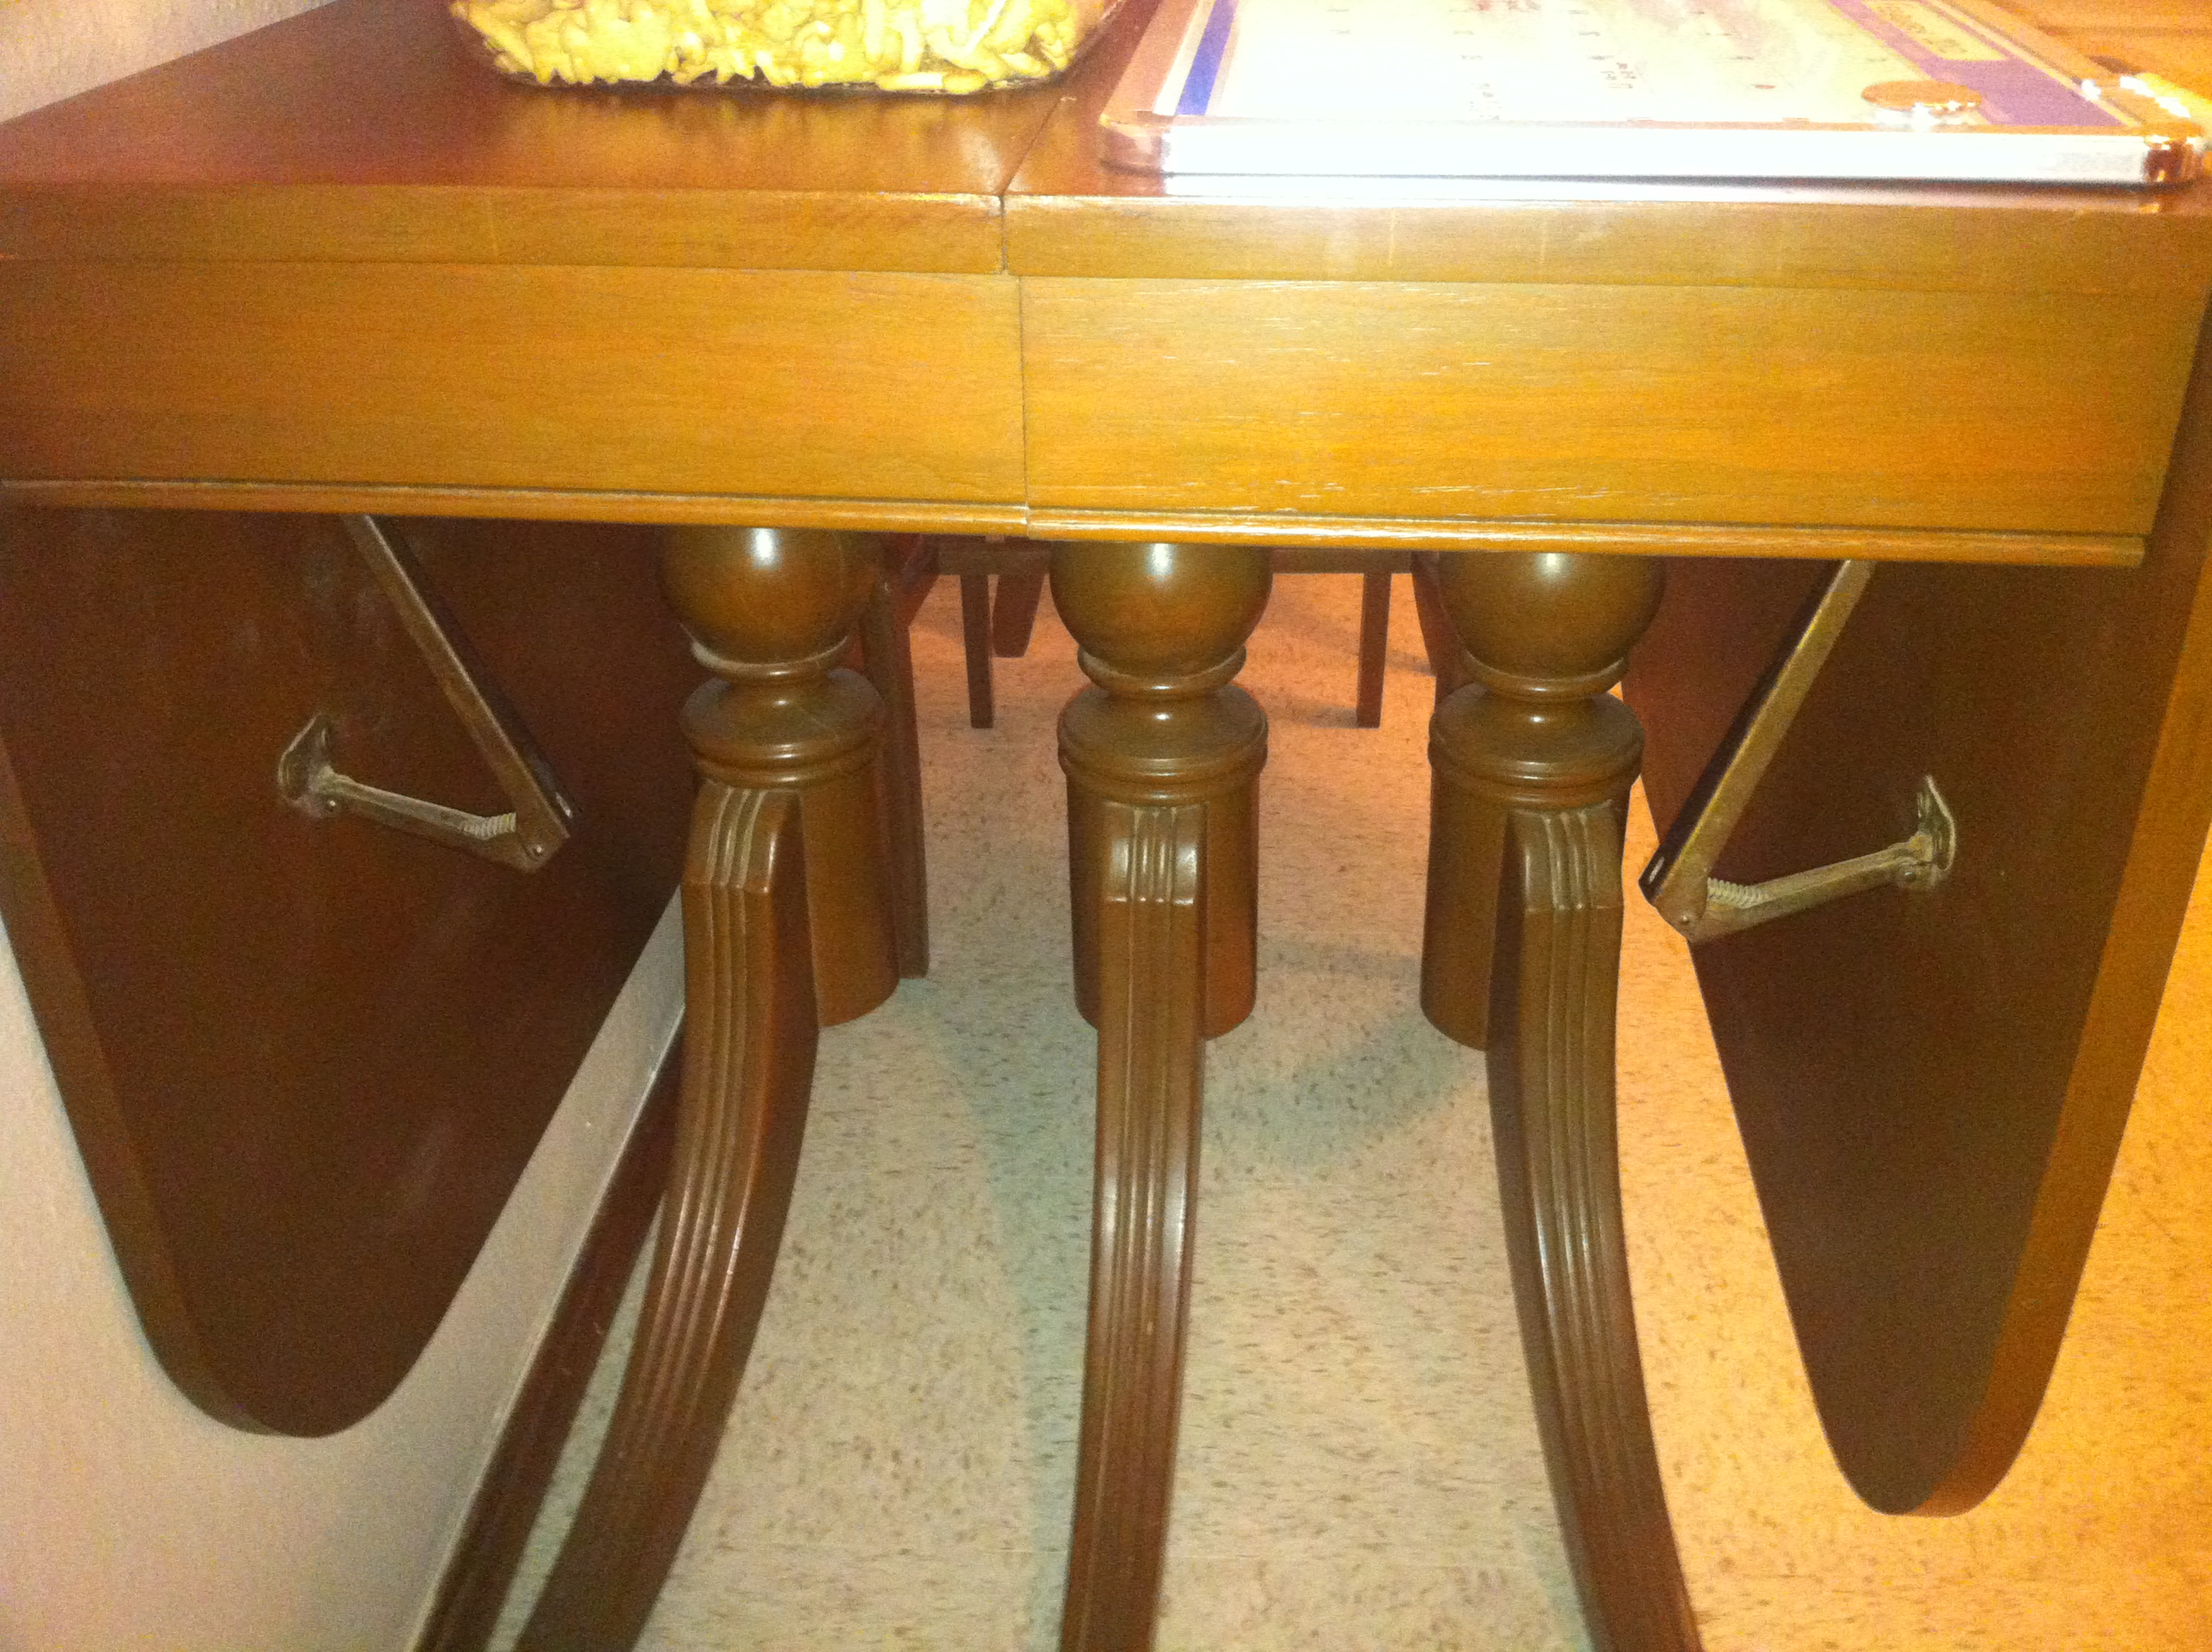 Duncan Phyfe Table With 2 Leaves And 4 Chairs For Sale